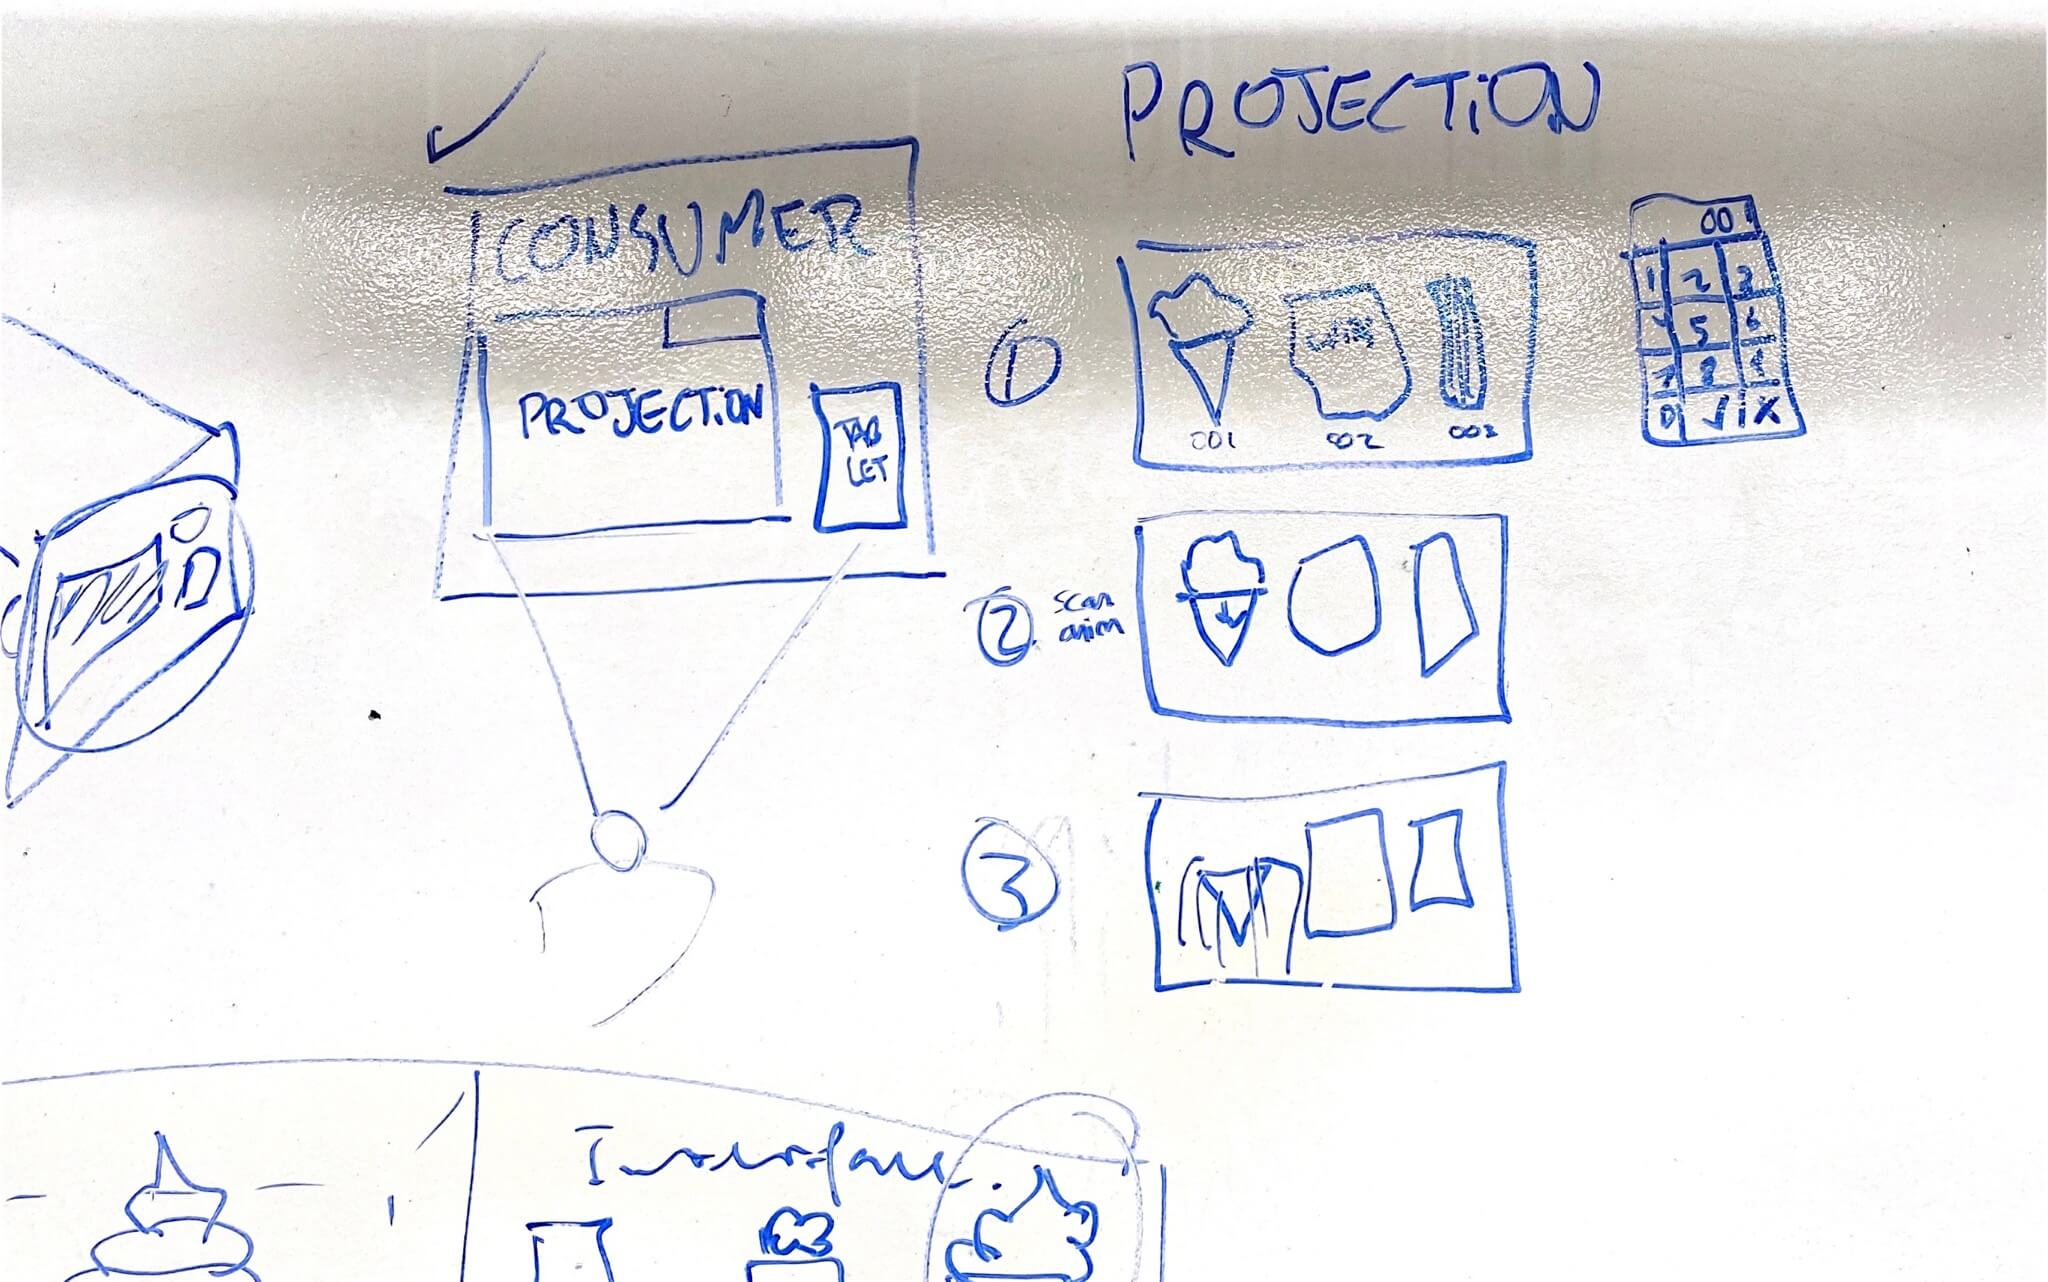 Early whiteboard sketch of the vending machine